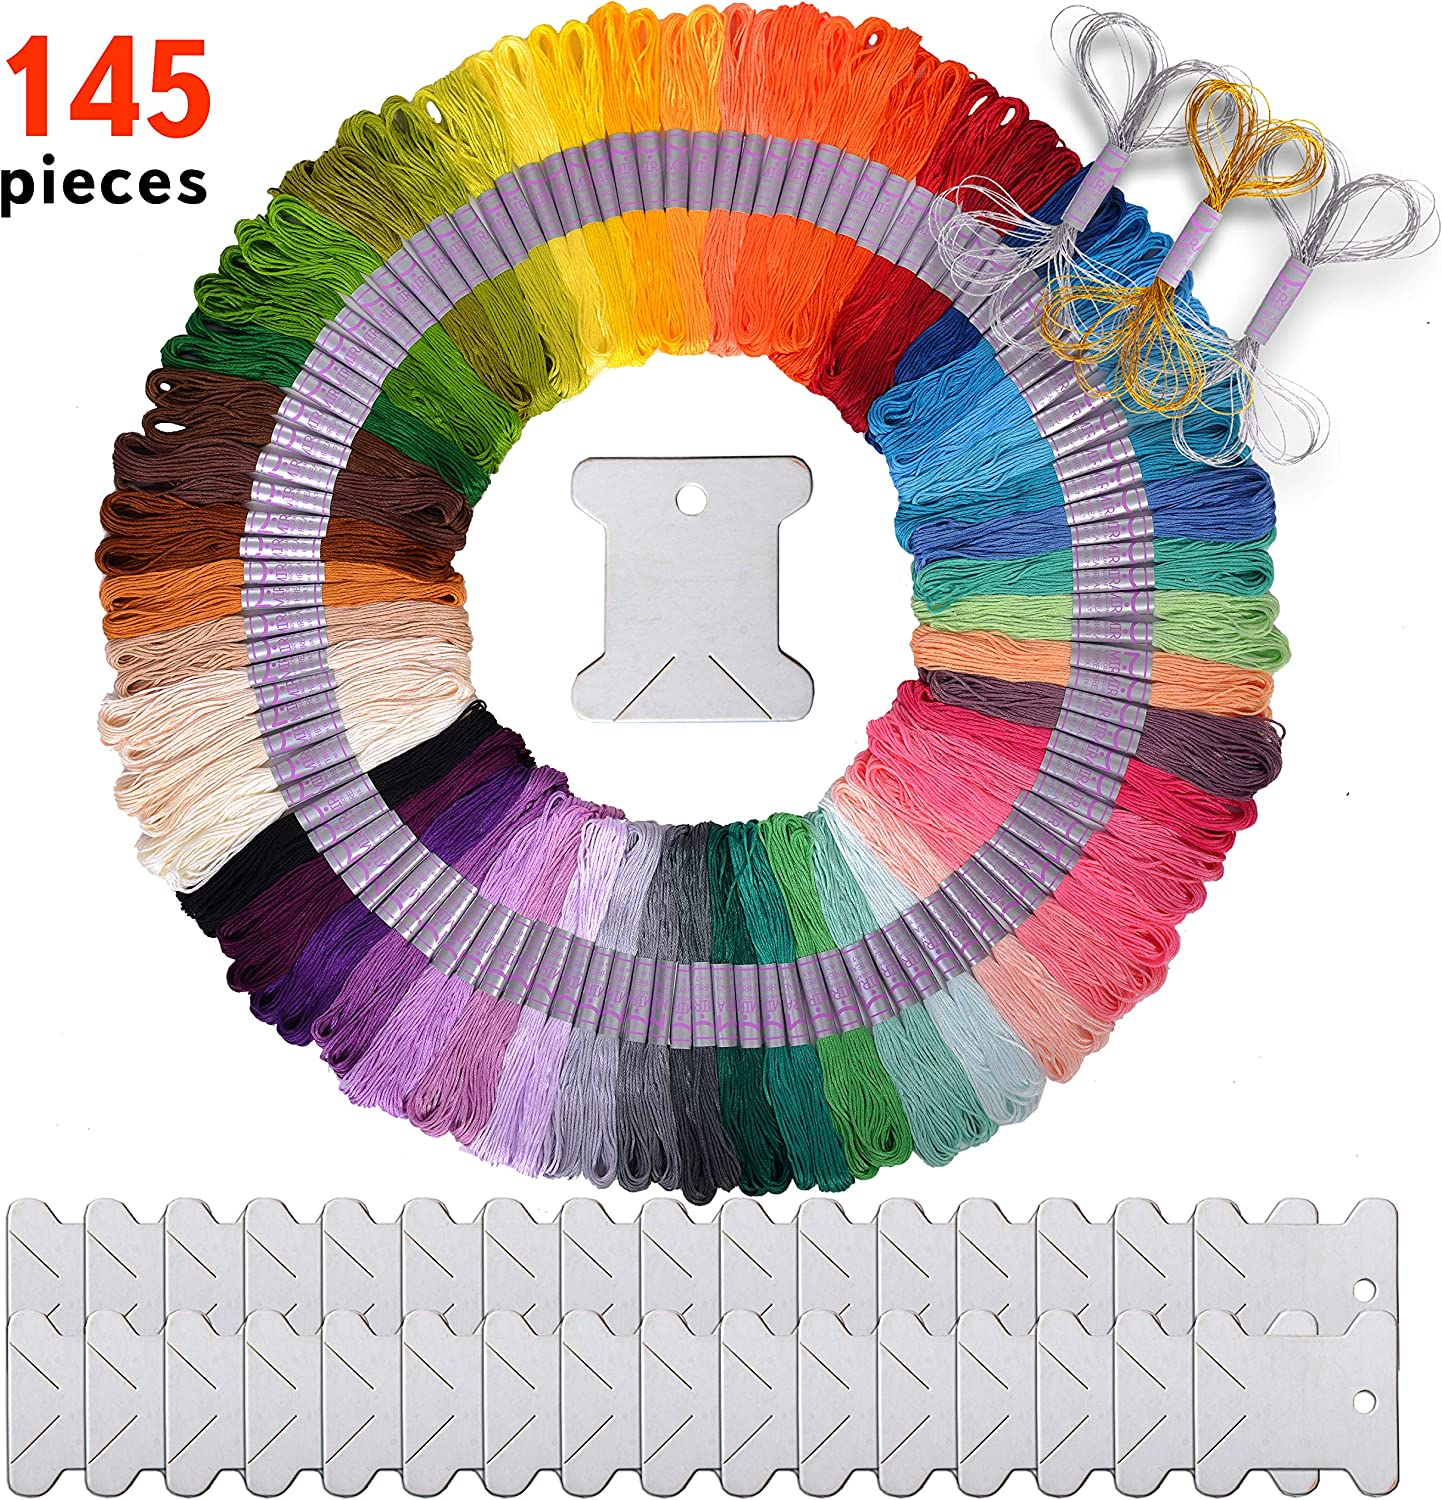 Friendship Bracelet Thread Making Kit Including Deluxe Gold and Silver Strings Bobbins Ideal Gift for Girls Premium 145 Piece Embroidery Floss and Cross Stitch Kit DMC Color Card